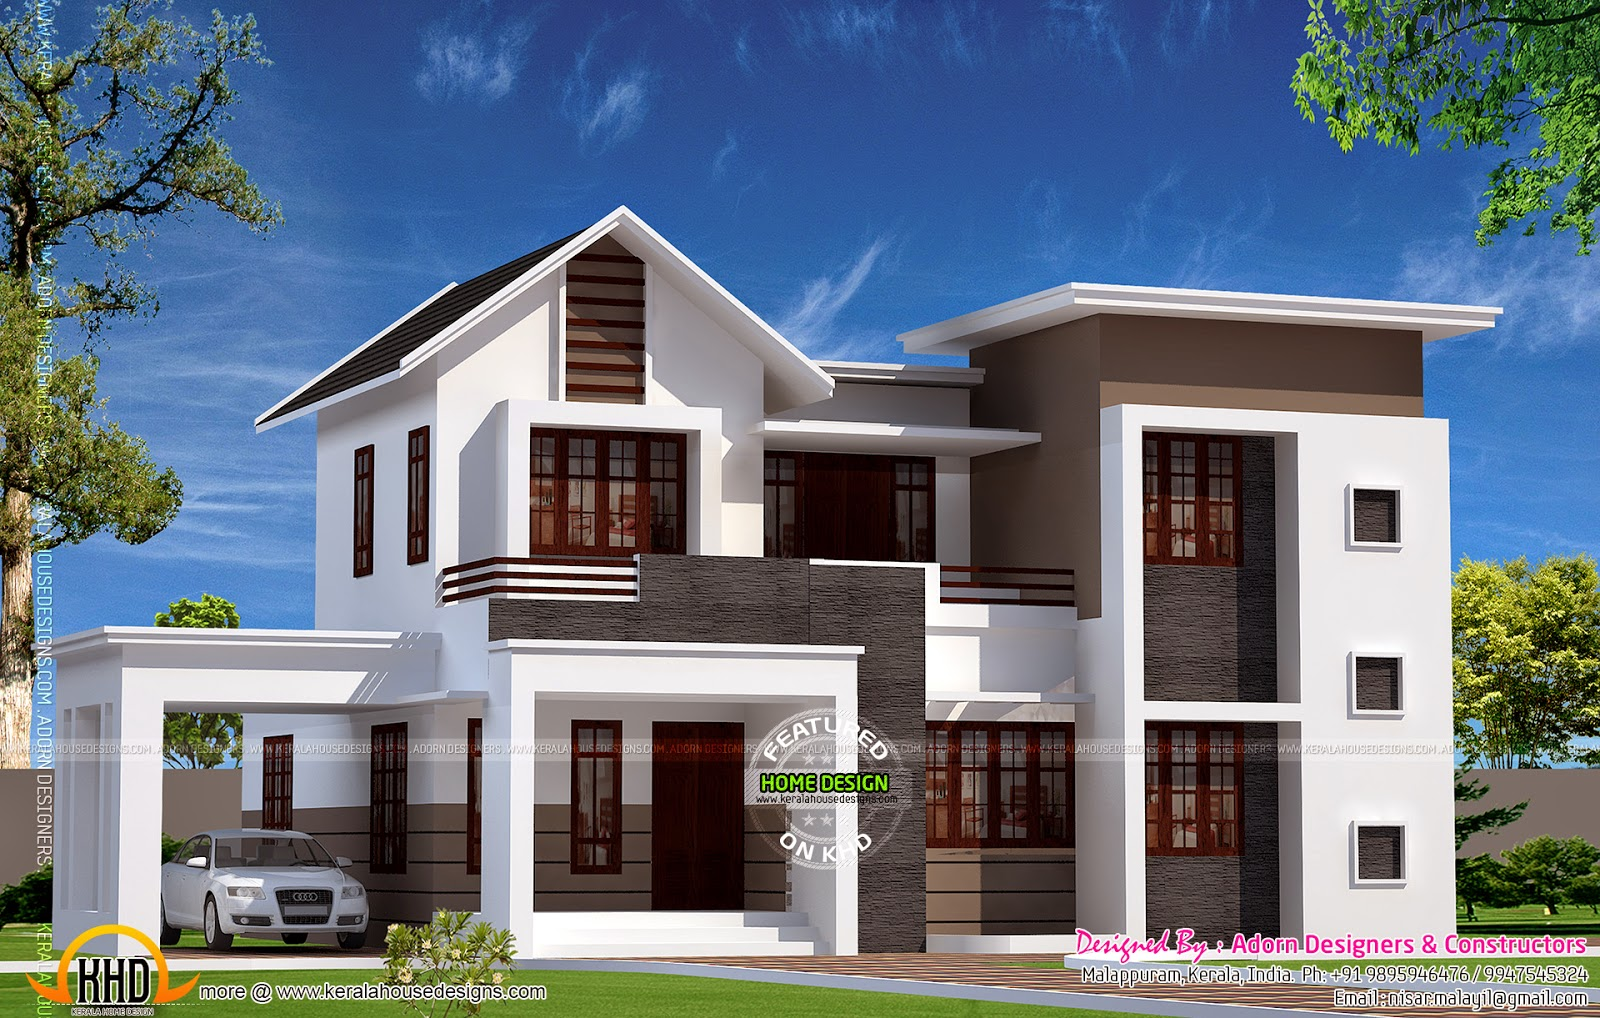 New house design in 1900 sq feet kerala home design and for New dizain home